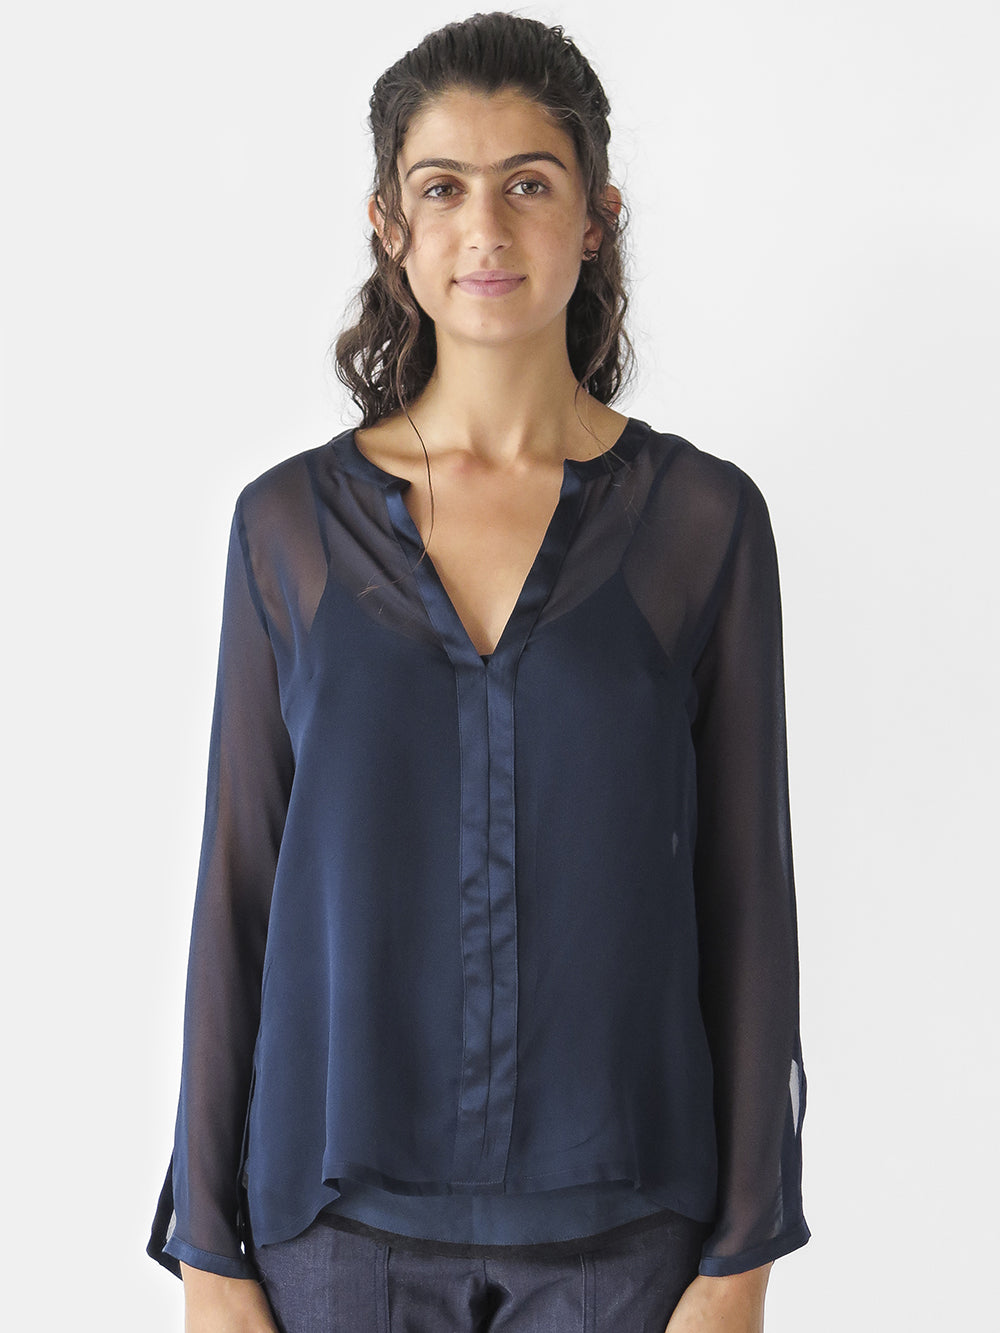 silk chiffon long sleeve Diego blouse with notched v-neck & silk charmeuse trim; has slits at sleeves and sideseam.